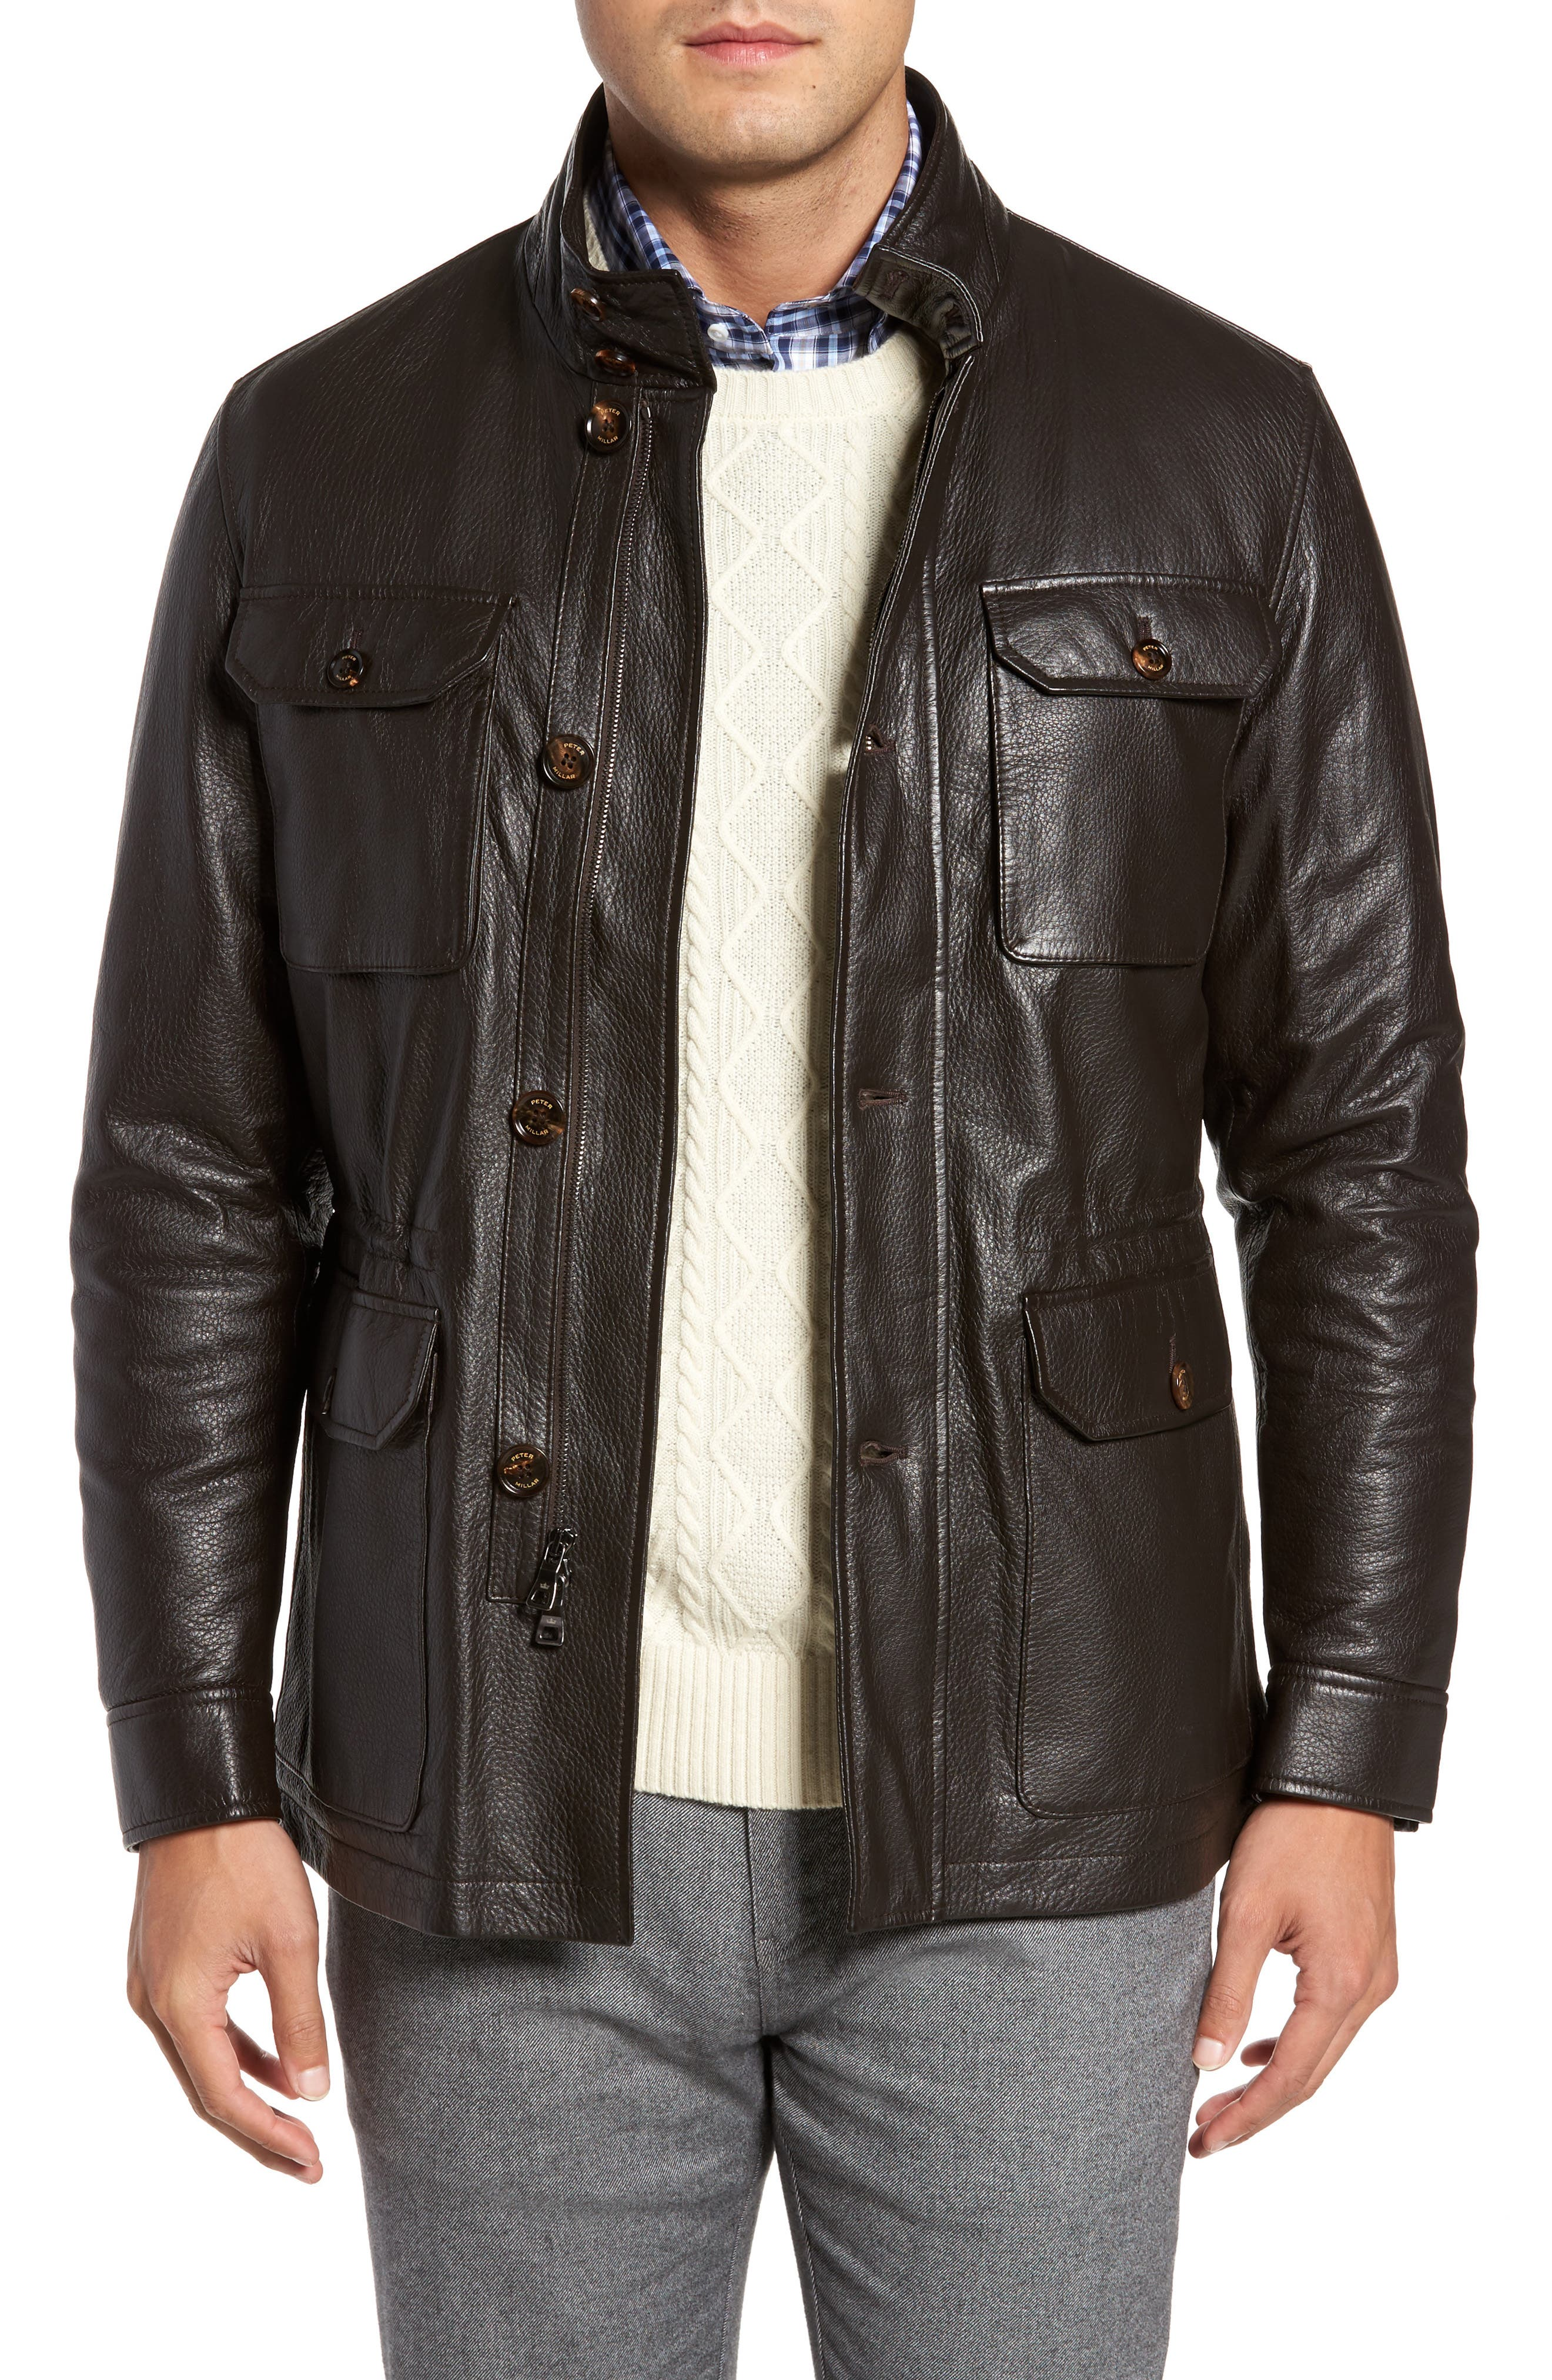 Woodland Discovery Deerskin Leather Jacket,                             Main thumbnail 1, color,                             203